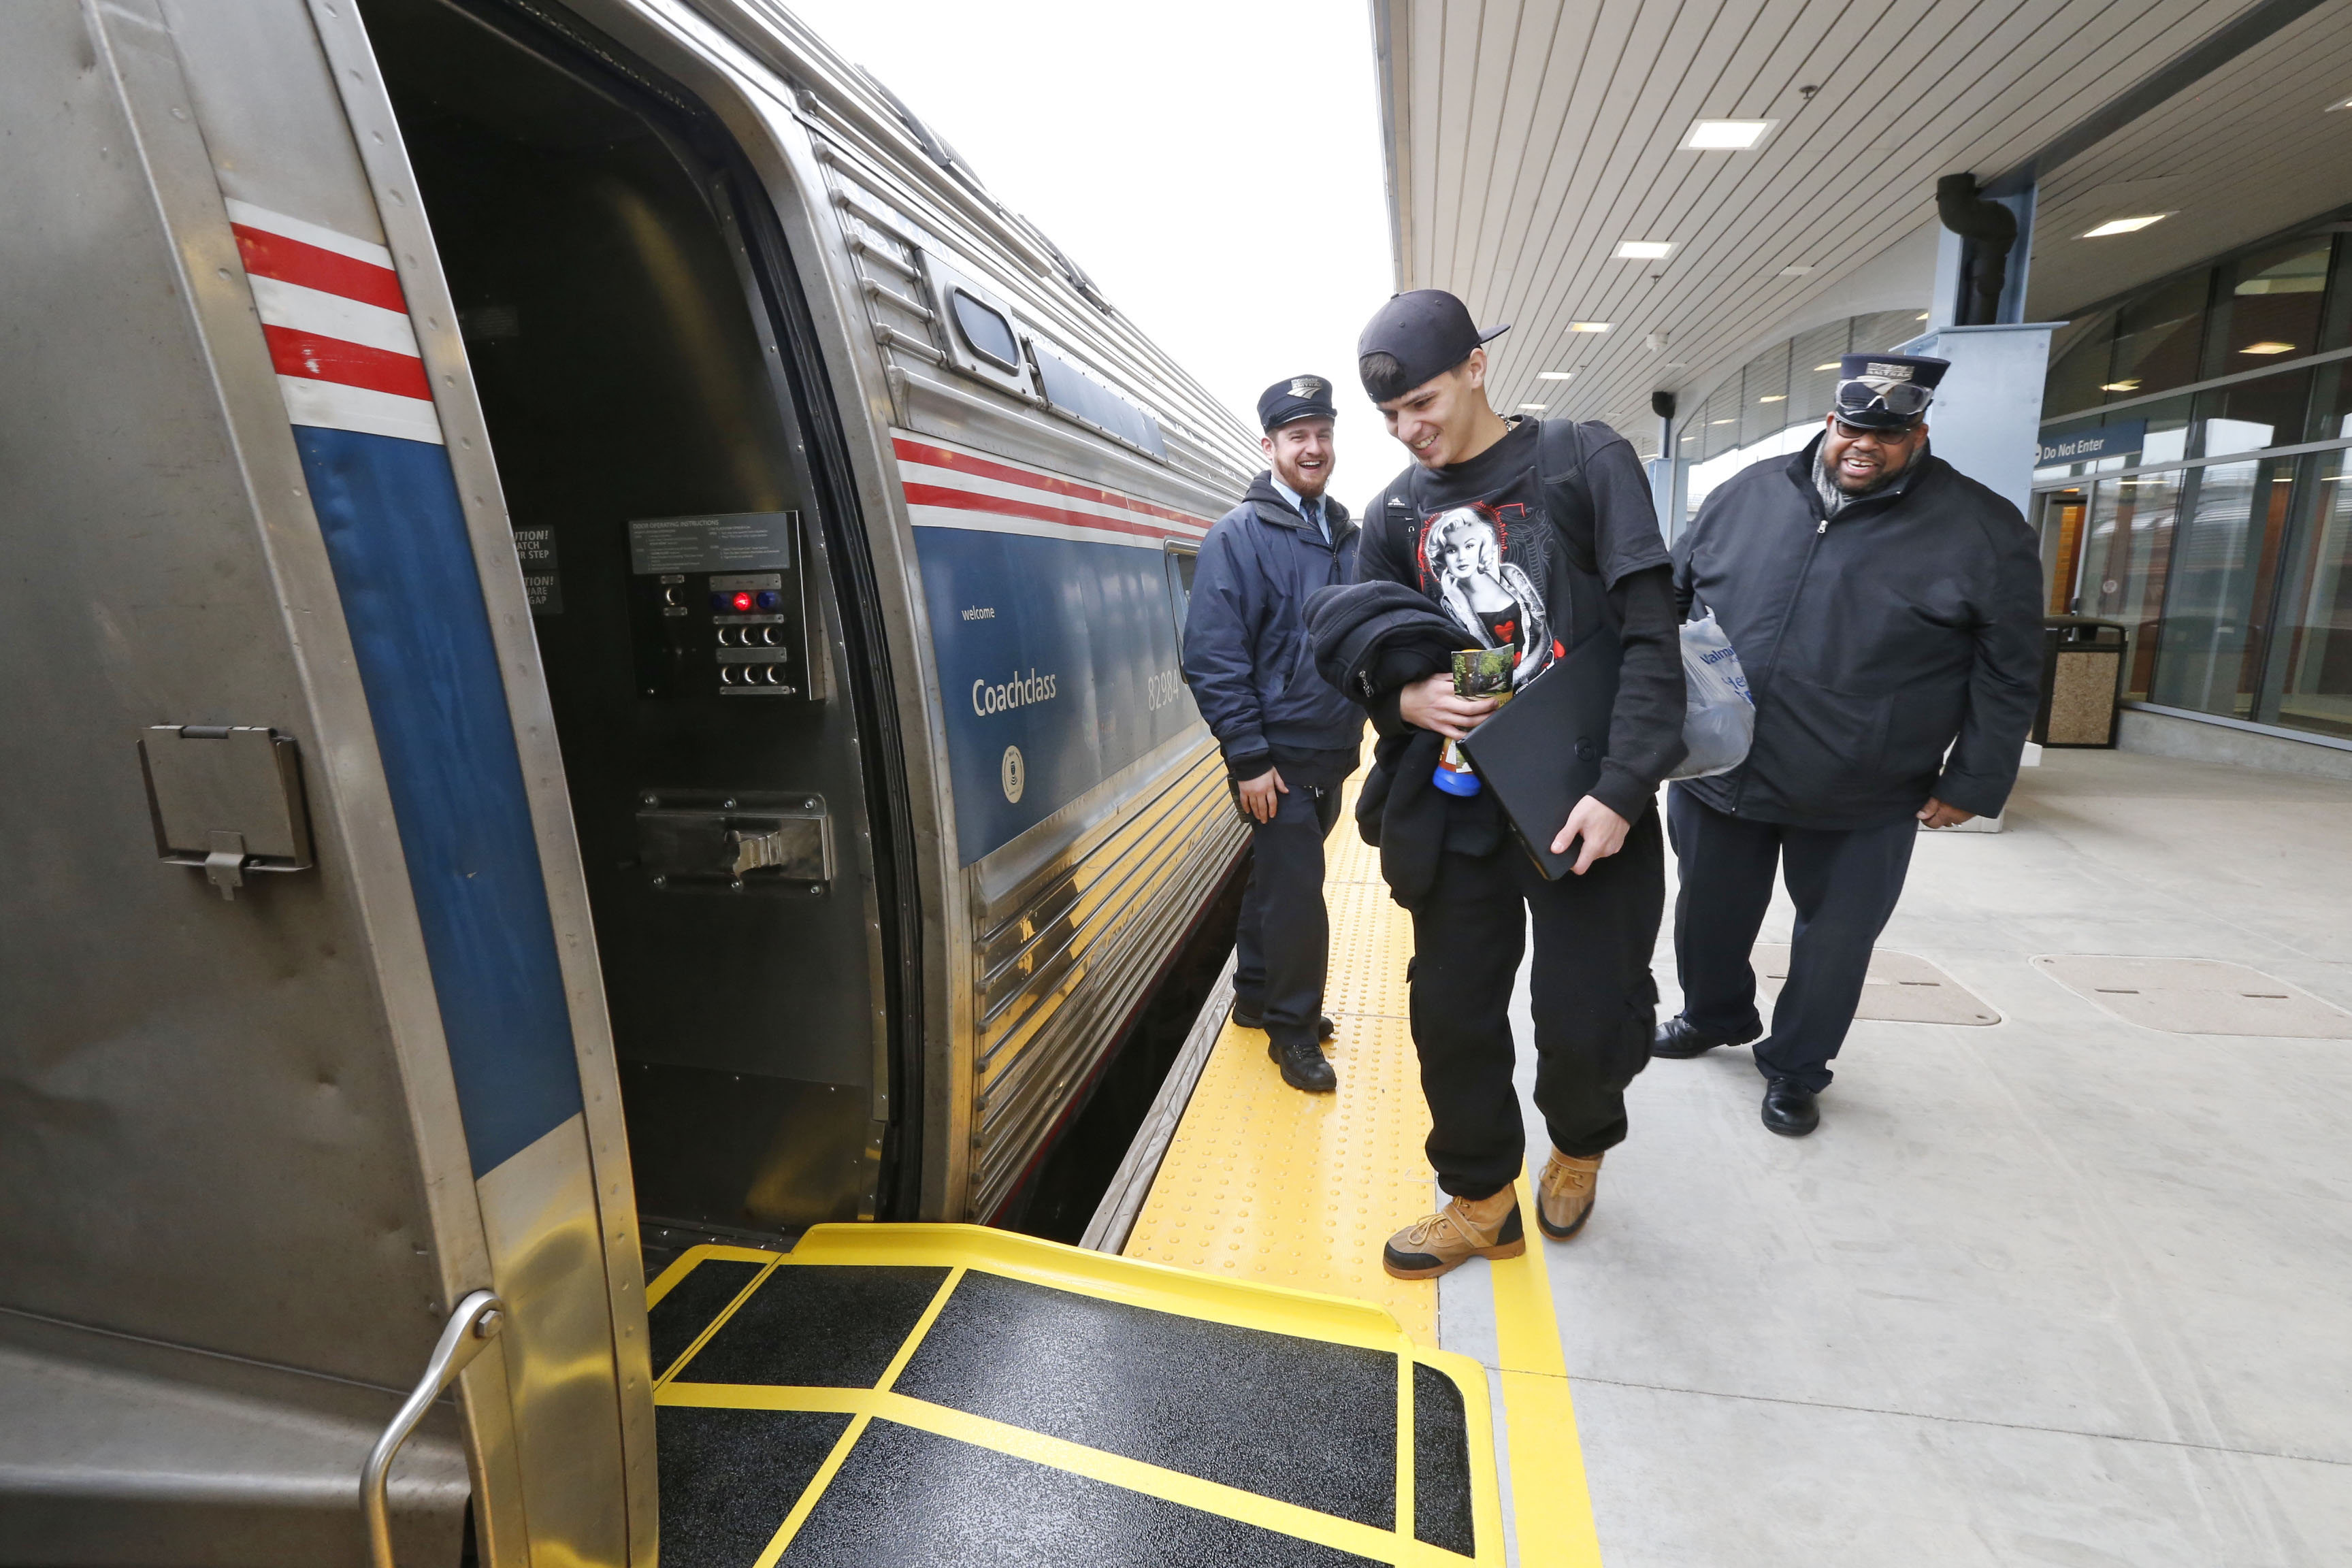 Amtrak conductors Greg Holoduek, left, and S. Johnson welcome Niagara Falls resident Luis Lopez aboard the first  train to depart from the new Amtrak station in Niagara Falls, N.Y., on   Tuesday, Dec. 6, 2016.  (Robert Kirkham/Buffalo News)